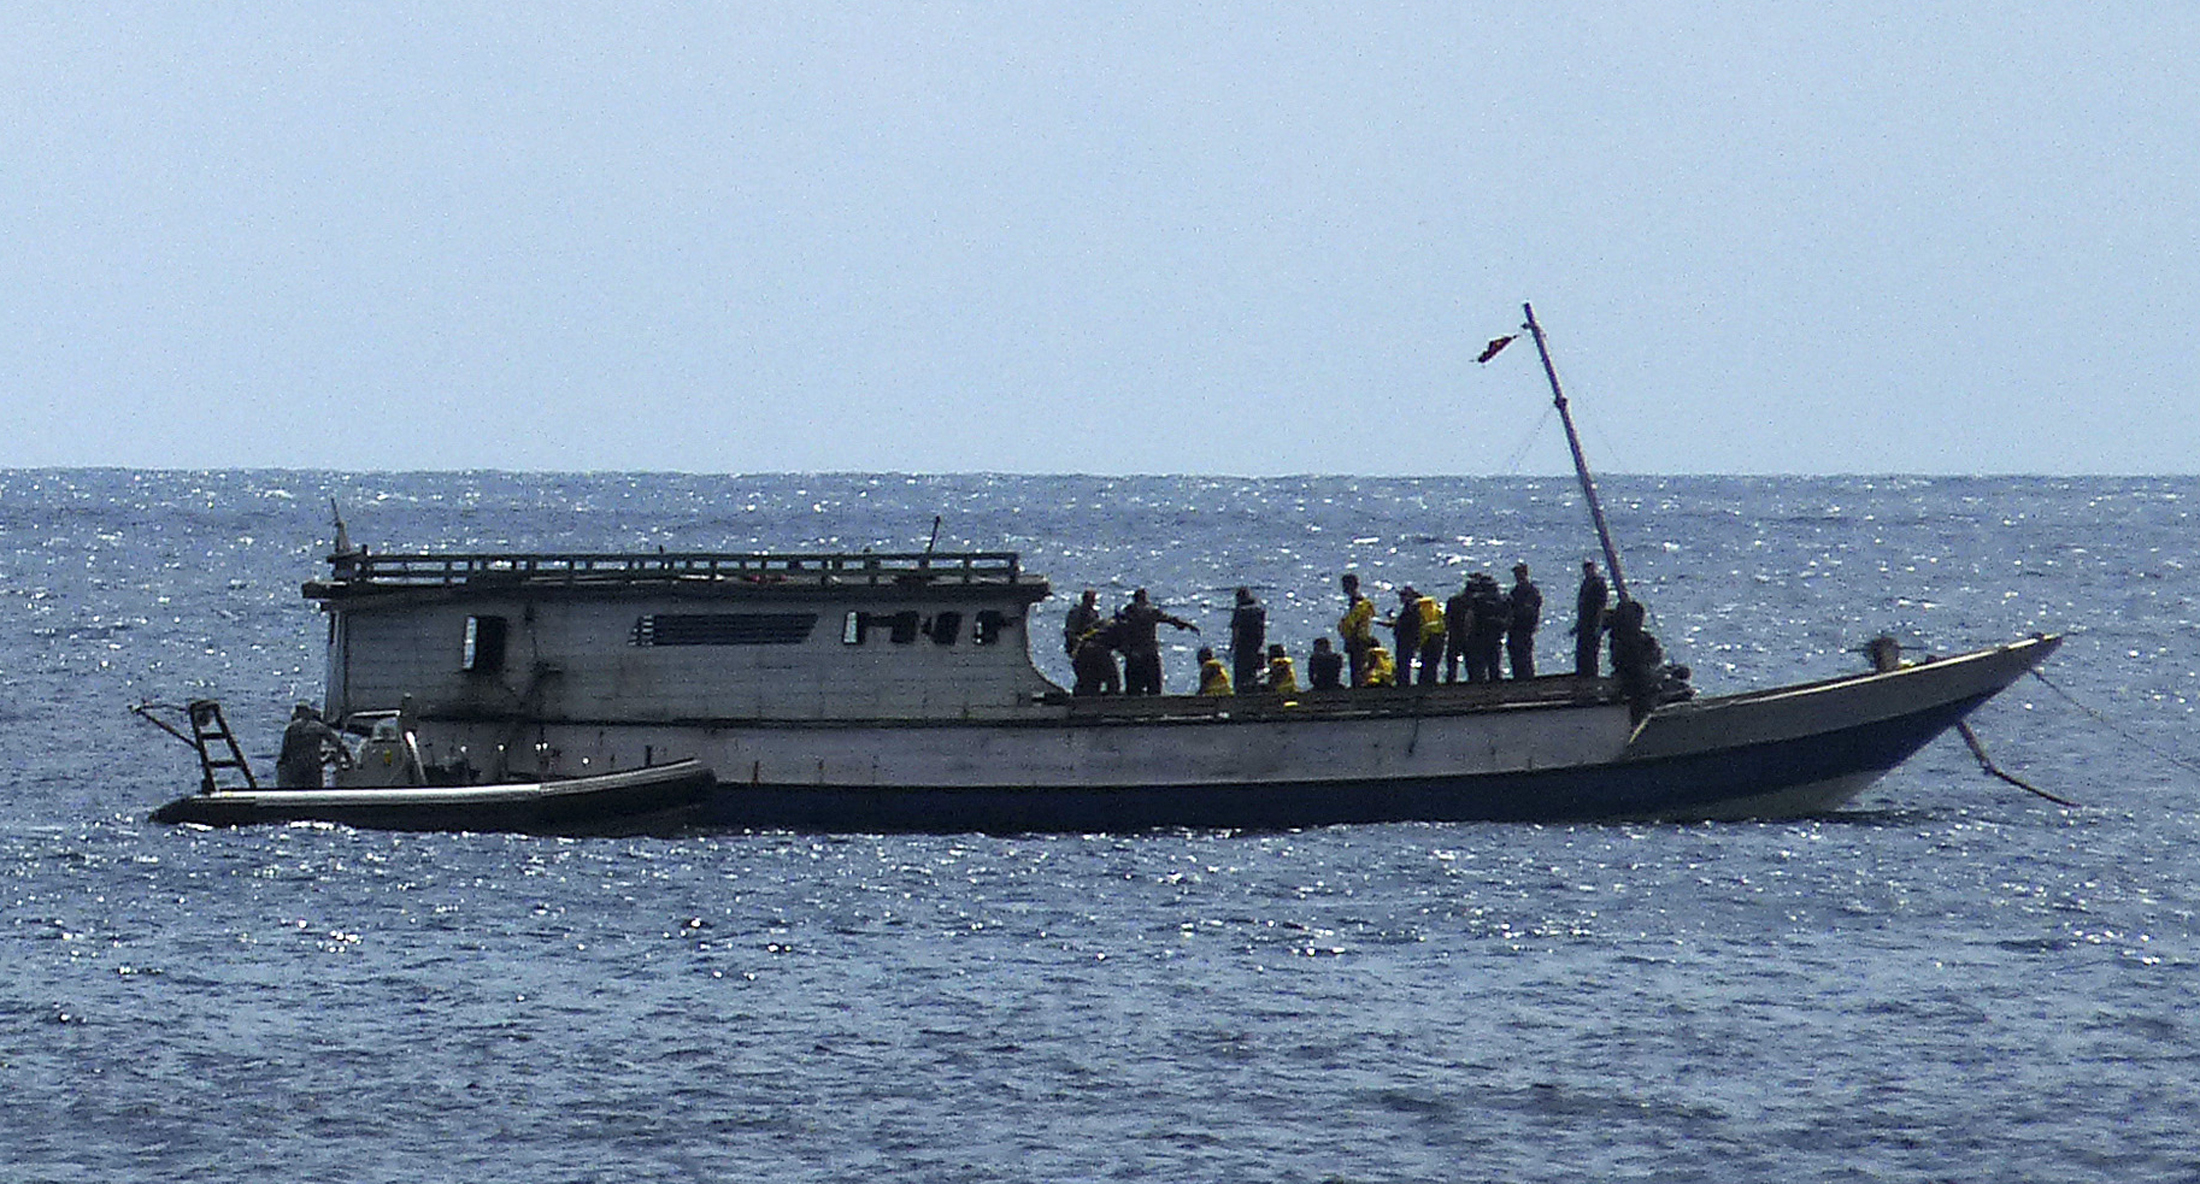 An Australian navy boat, front left, comes alongside a boat carrying 50 asylum seekers after it arrived at Flying Fish Cove on Christmas Island, about 2,600 km (1,600 miles) northwest of Perth, on Aug. 7, 2011.